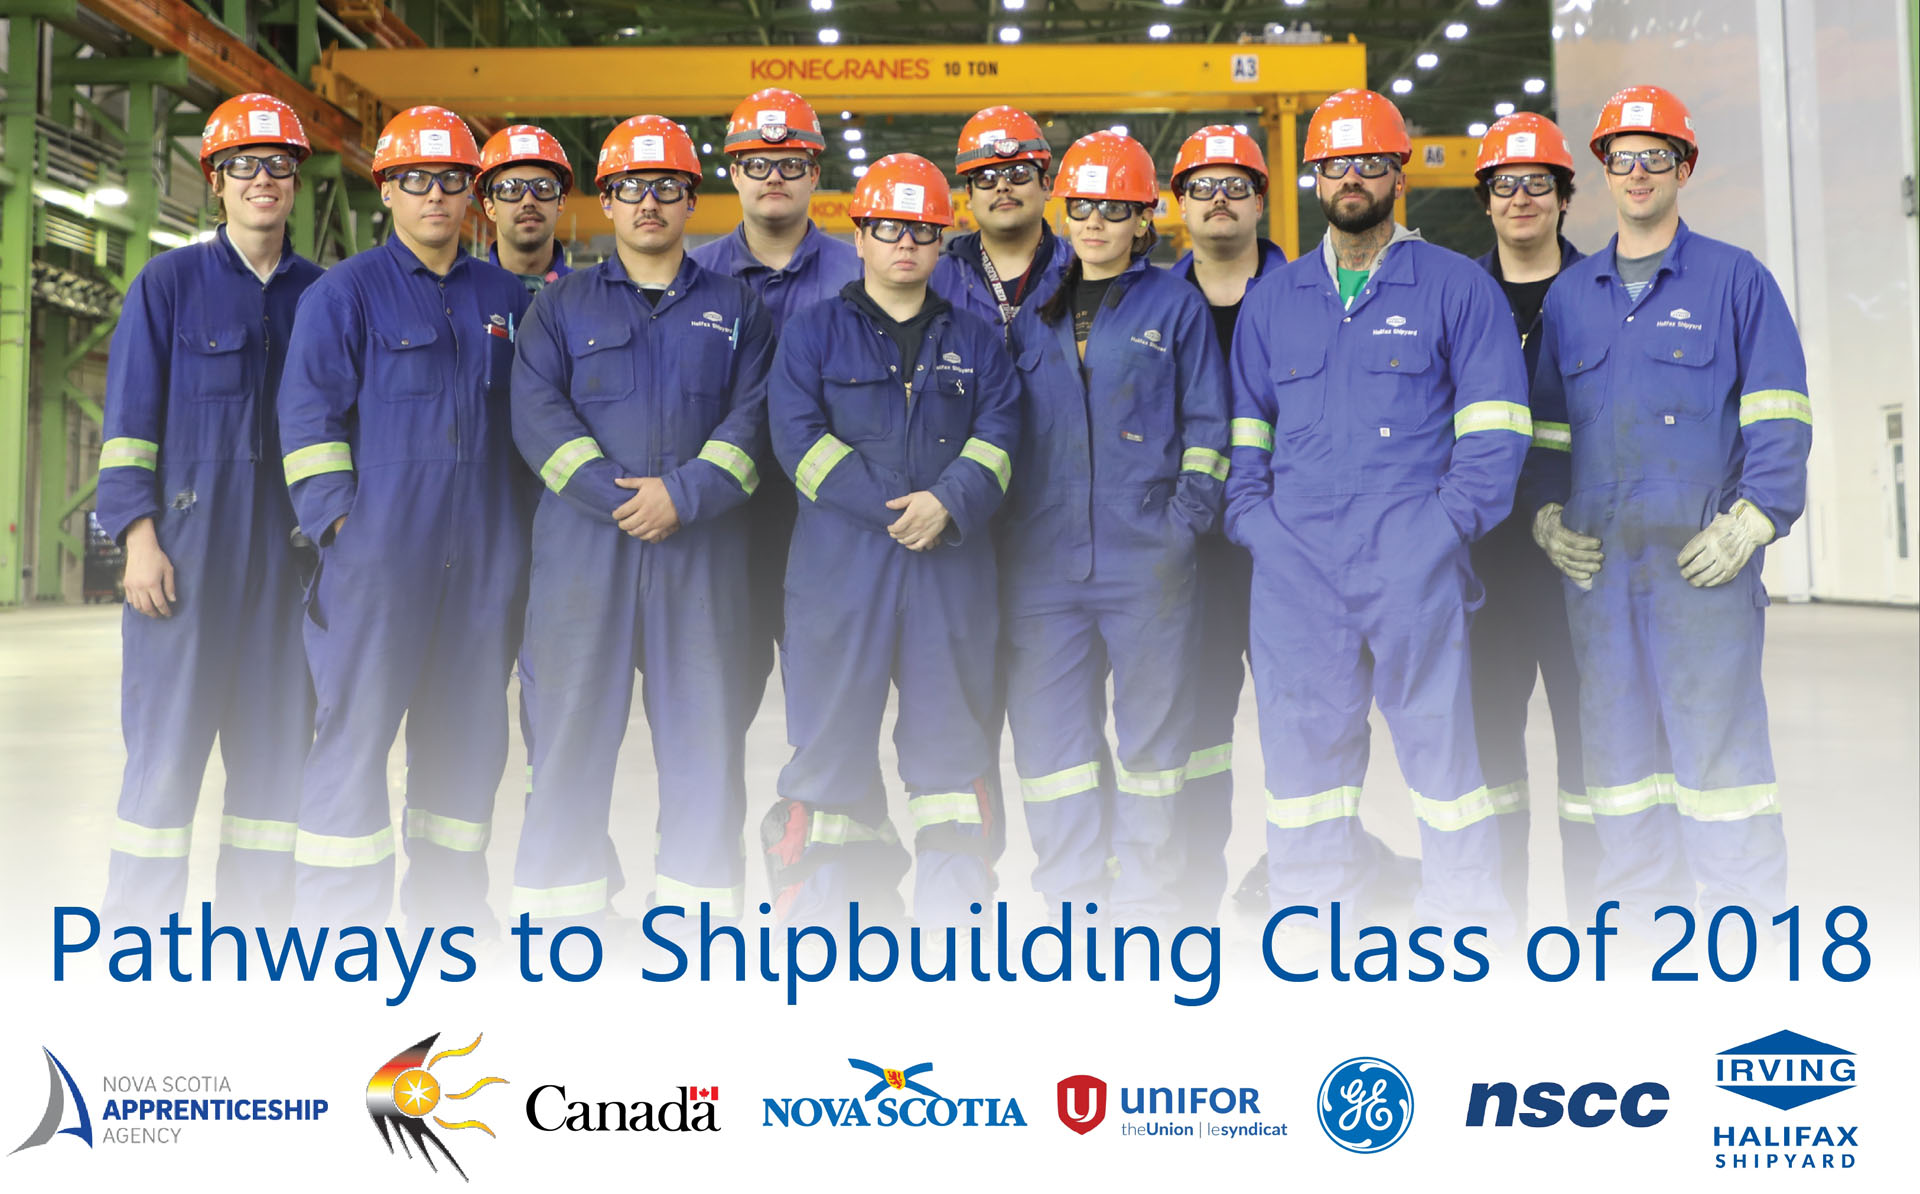 http://shipsforcanada.ca/images/story-images/Pathways-class-pic-with-logos-text-banner.jpg